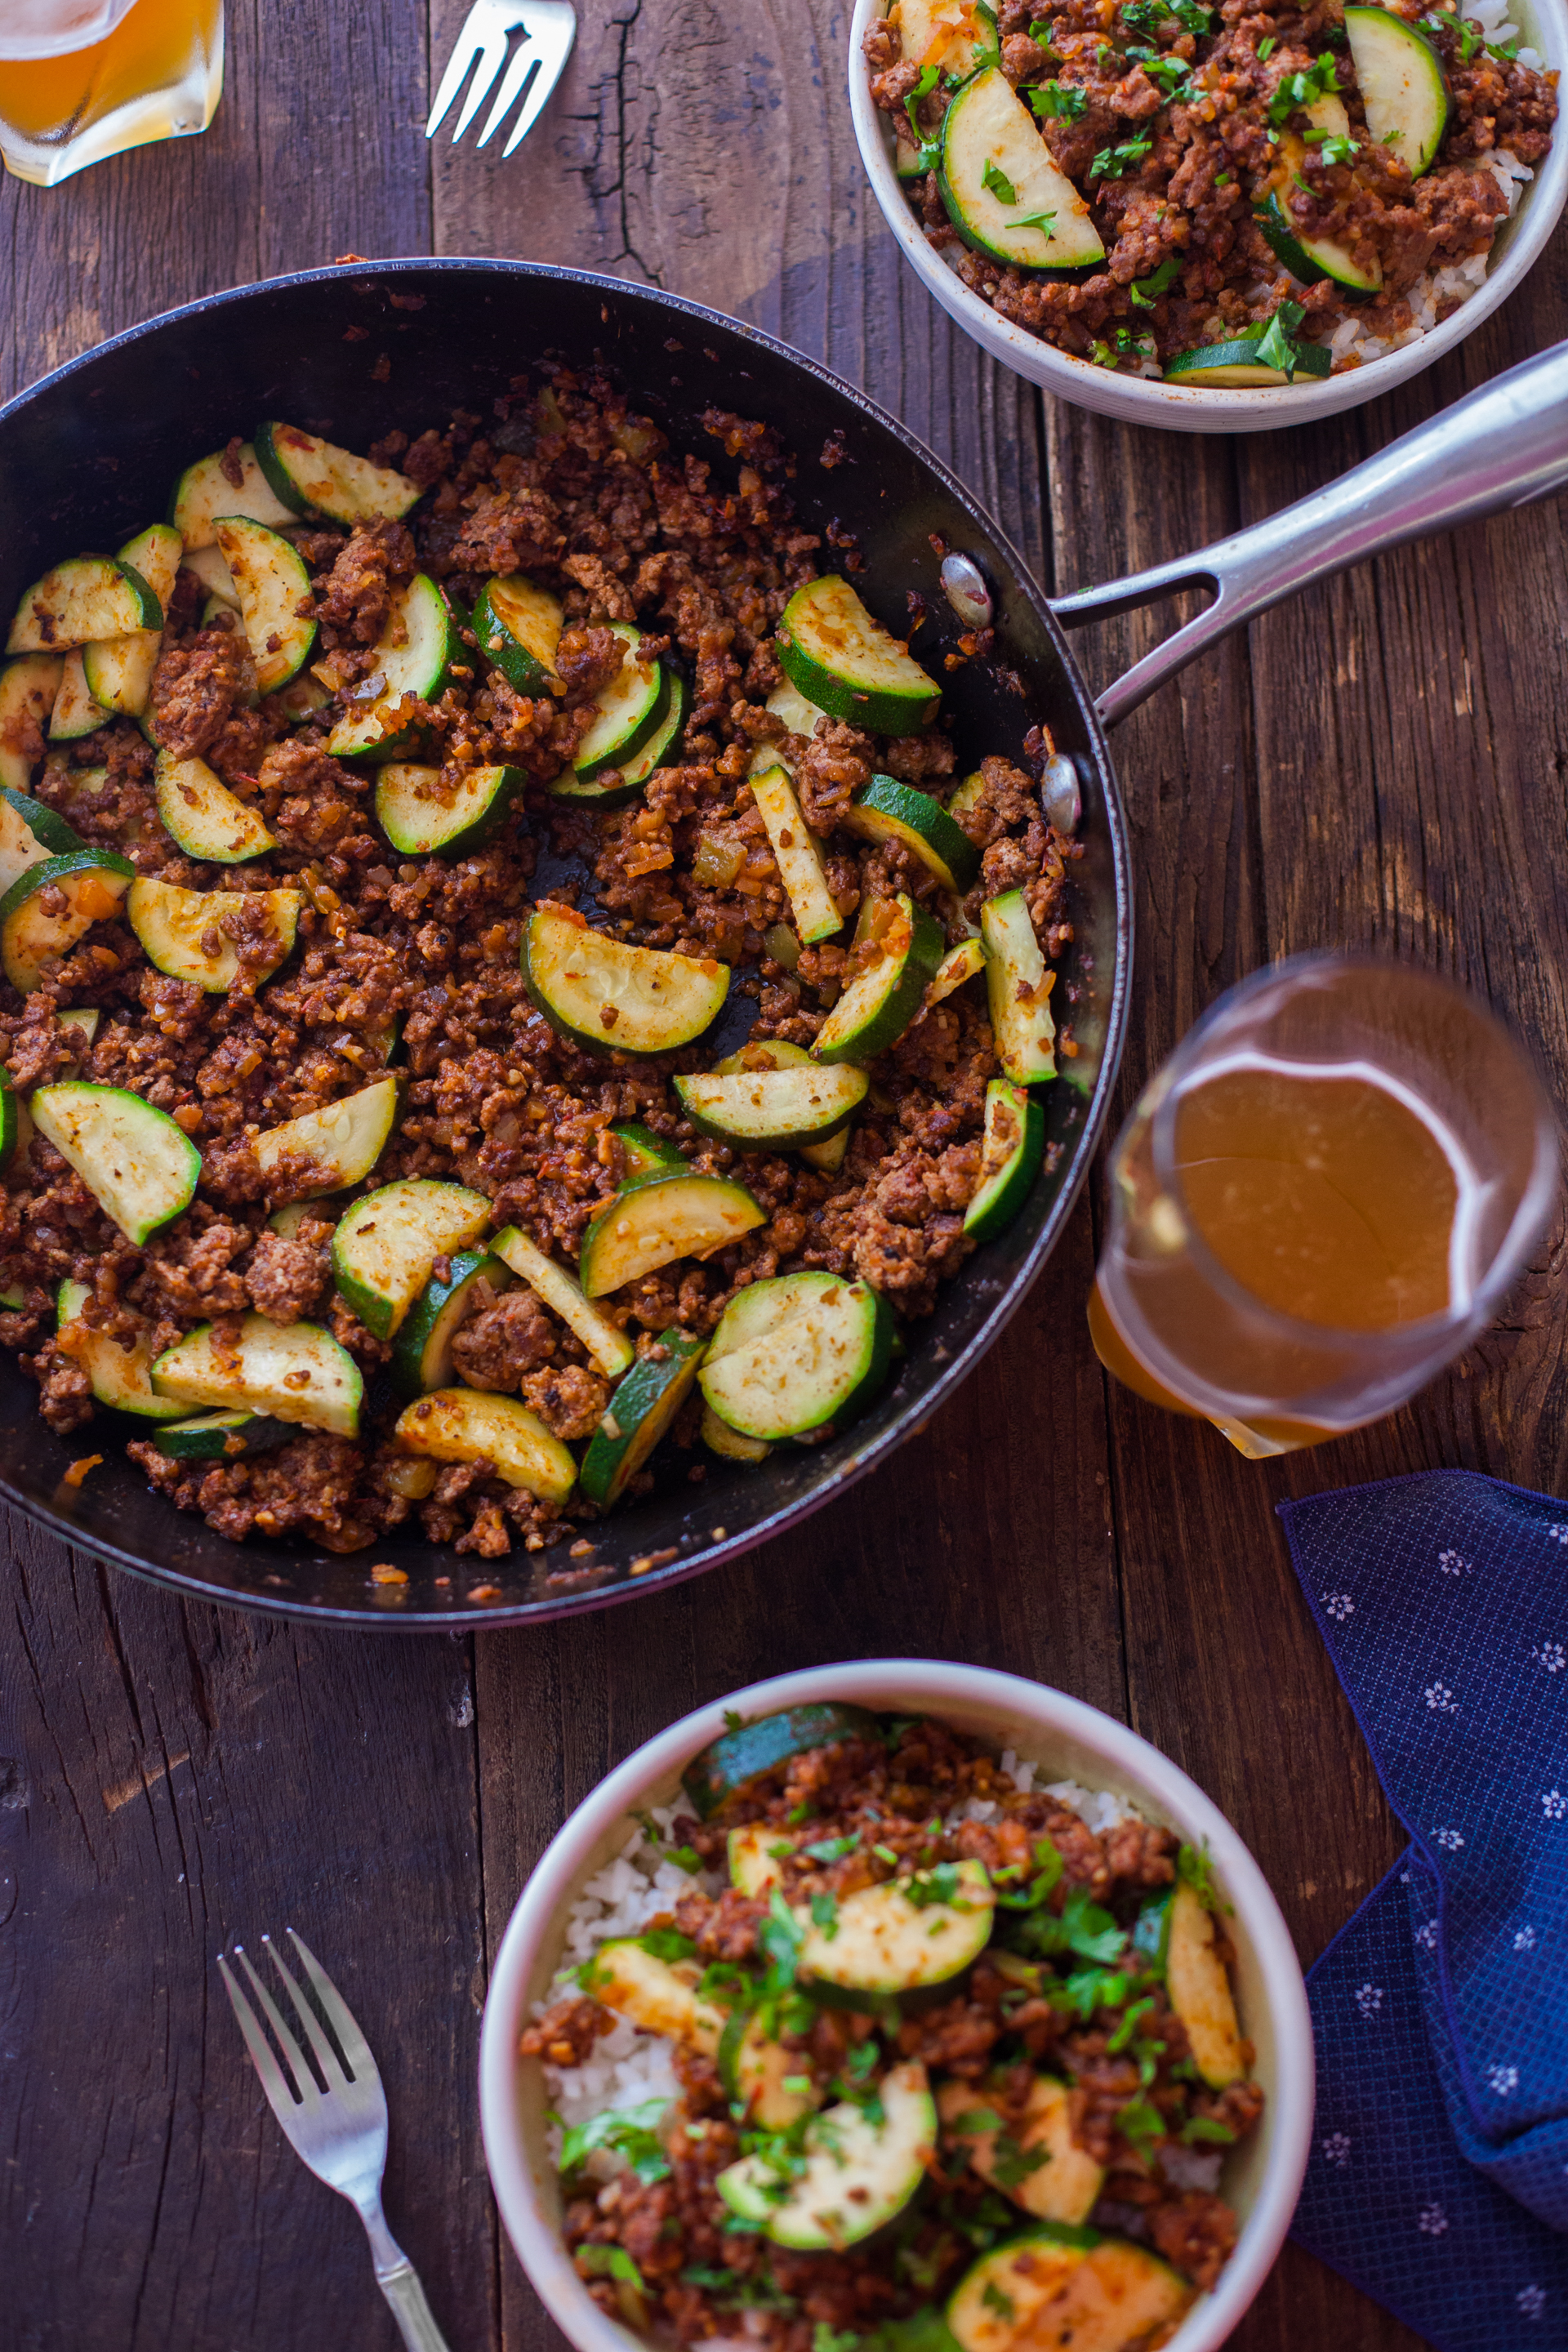 Zucchini Beef Skillet Recipe a One-Pot Paleo Dinner